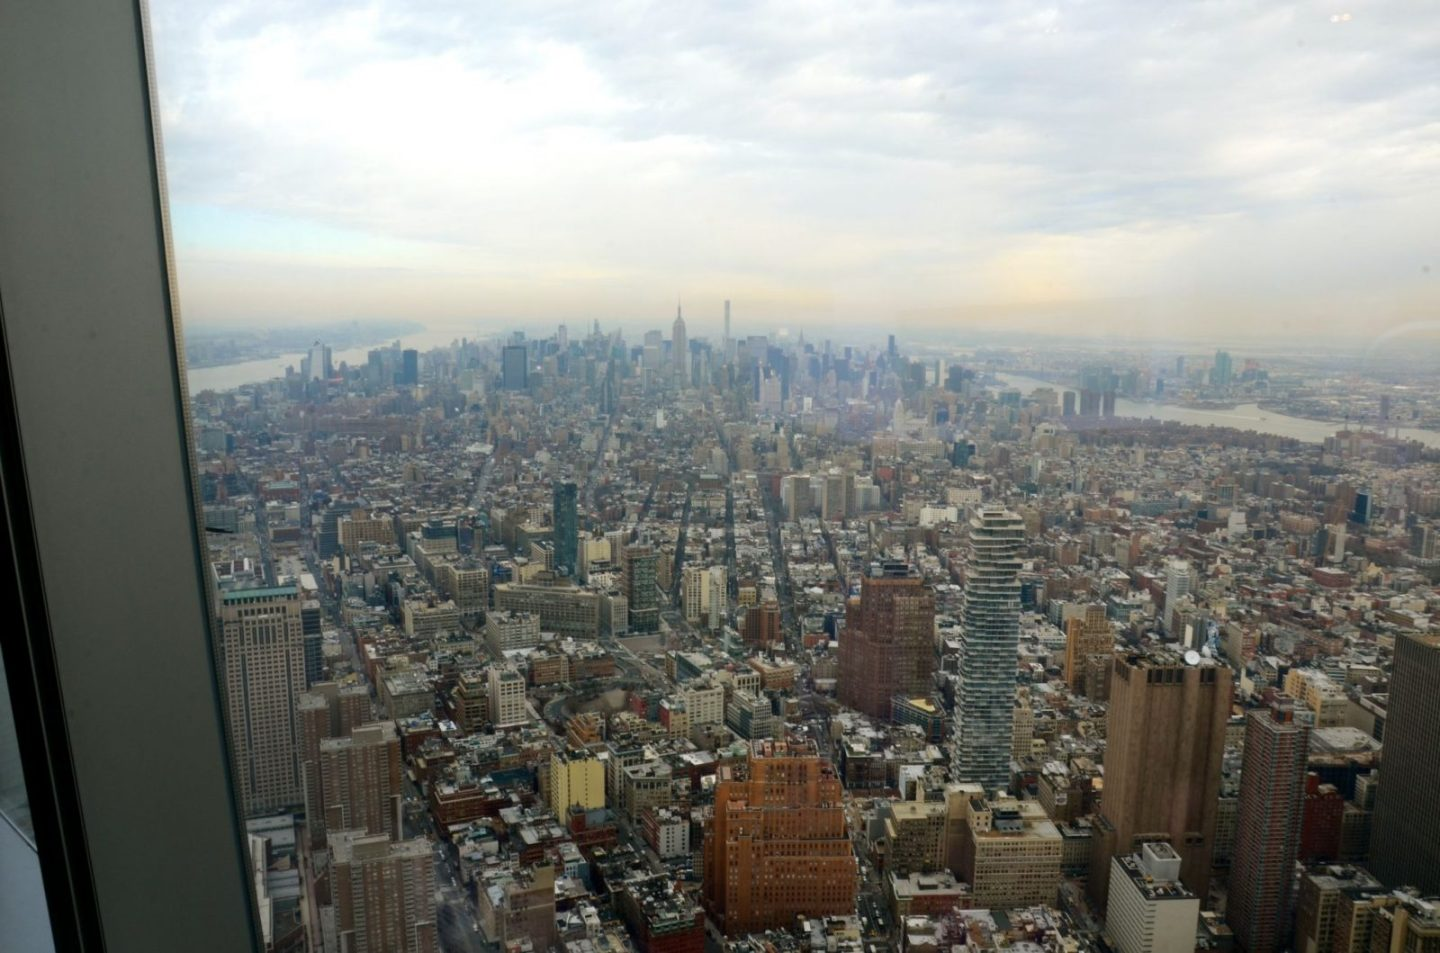 View from One World Observatory in New York.